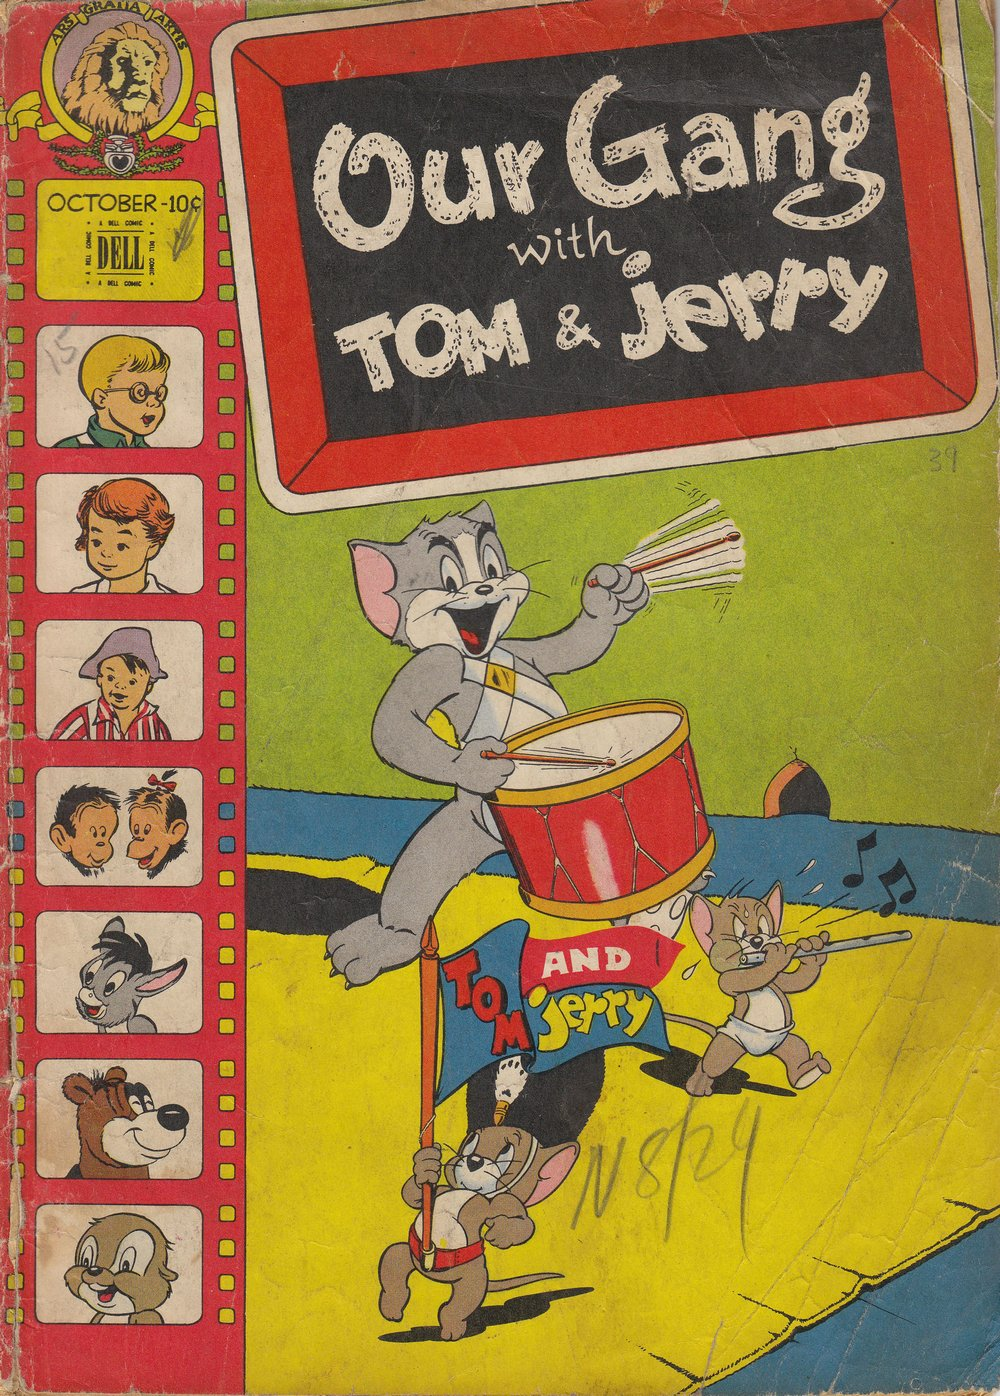 Our Gang with Tom & Jerry 39 Page 1